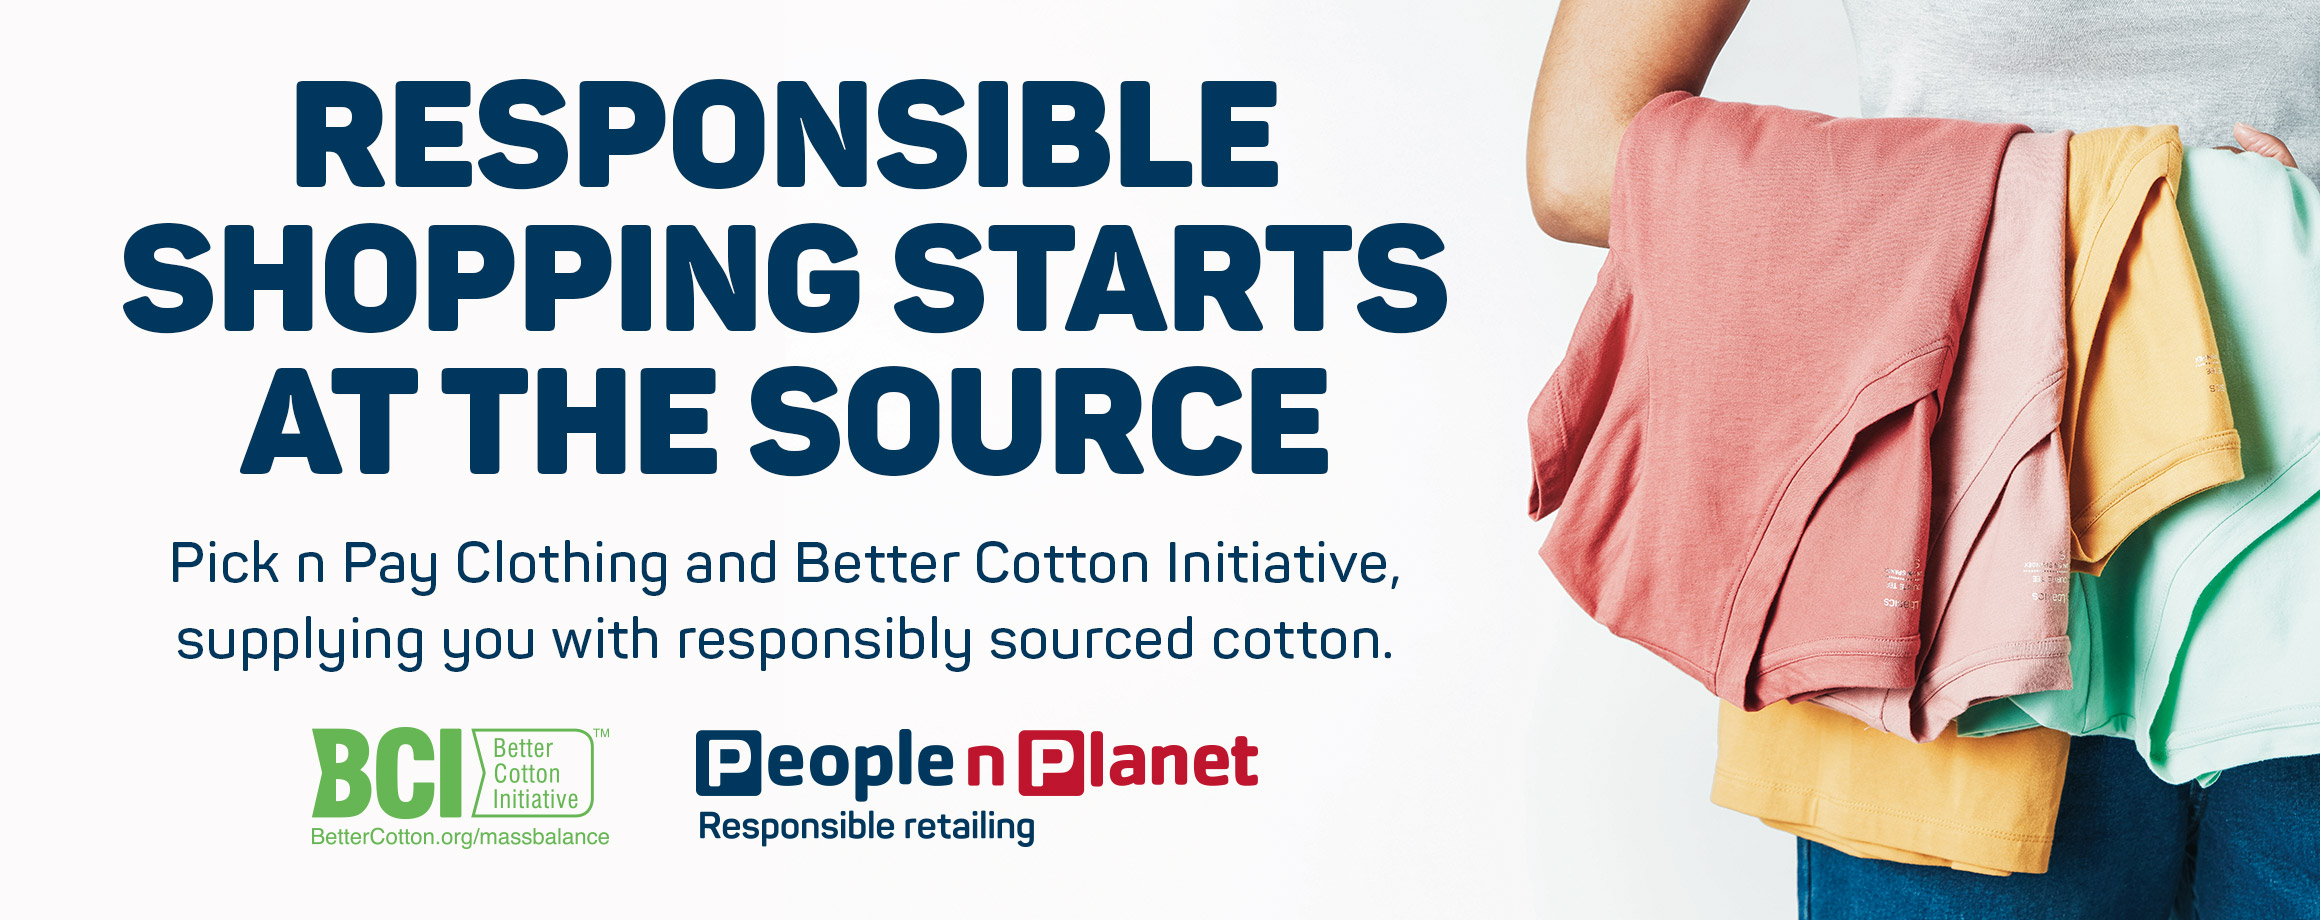 Responsible shopping starts at the source. Pick n Pay Clothing and Better Cotton Initiative, supllying you with the responsibly sourced cotton